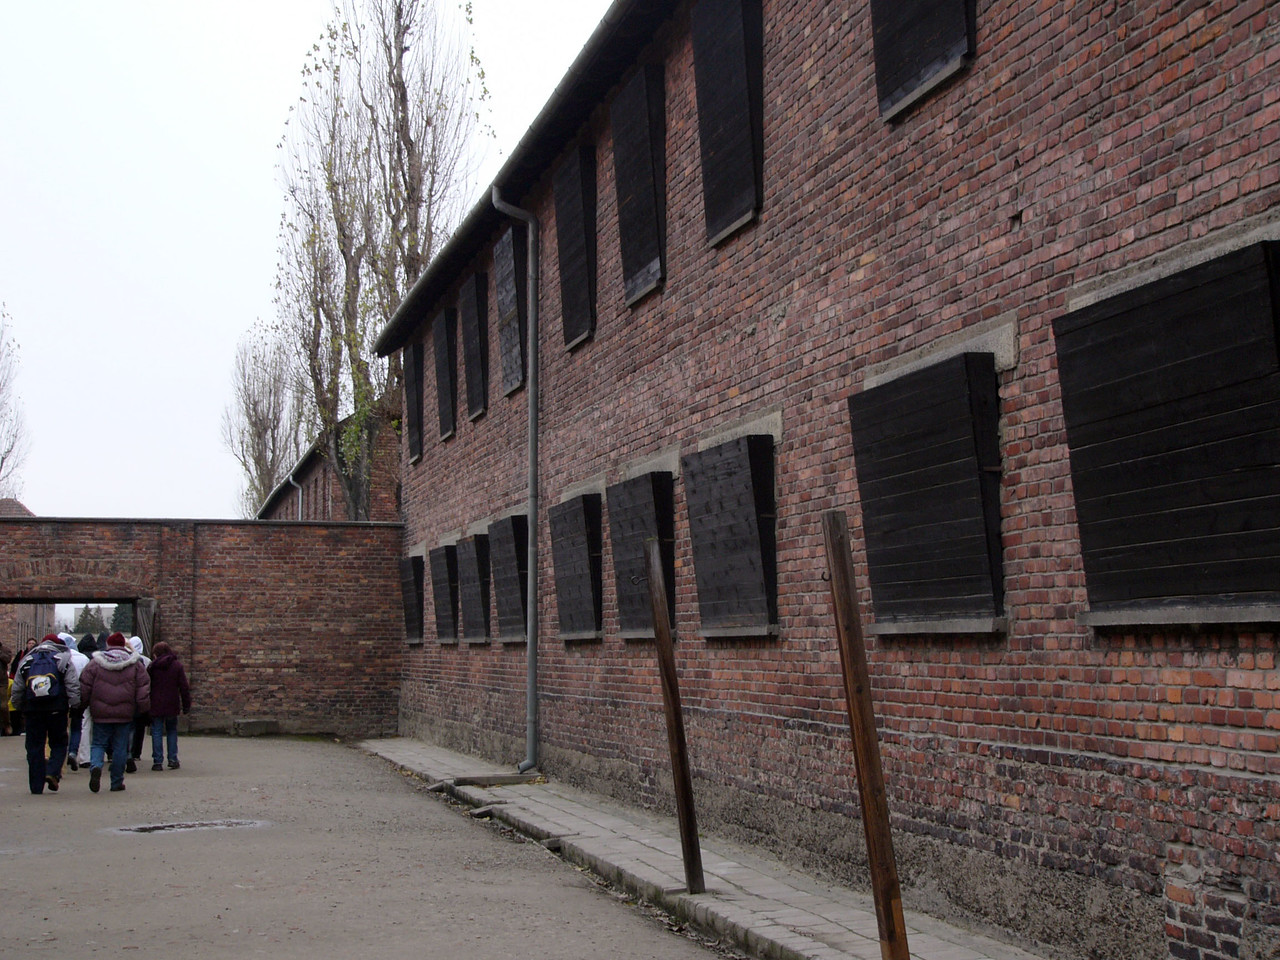 The windows of Block 12 (hospital and medical experimentation) were boarded to hide the executions occurring in the courtyard.